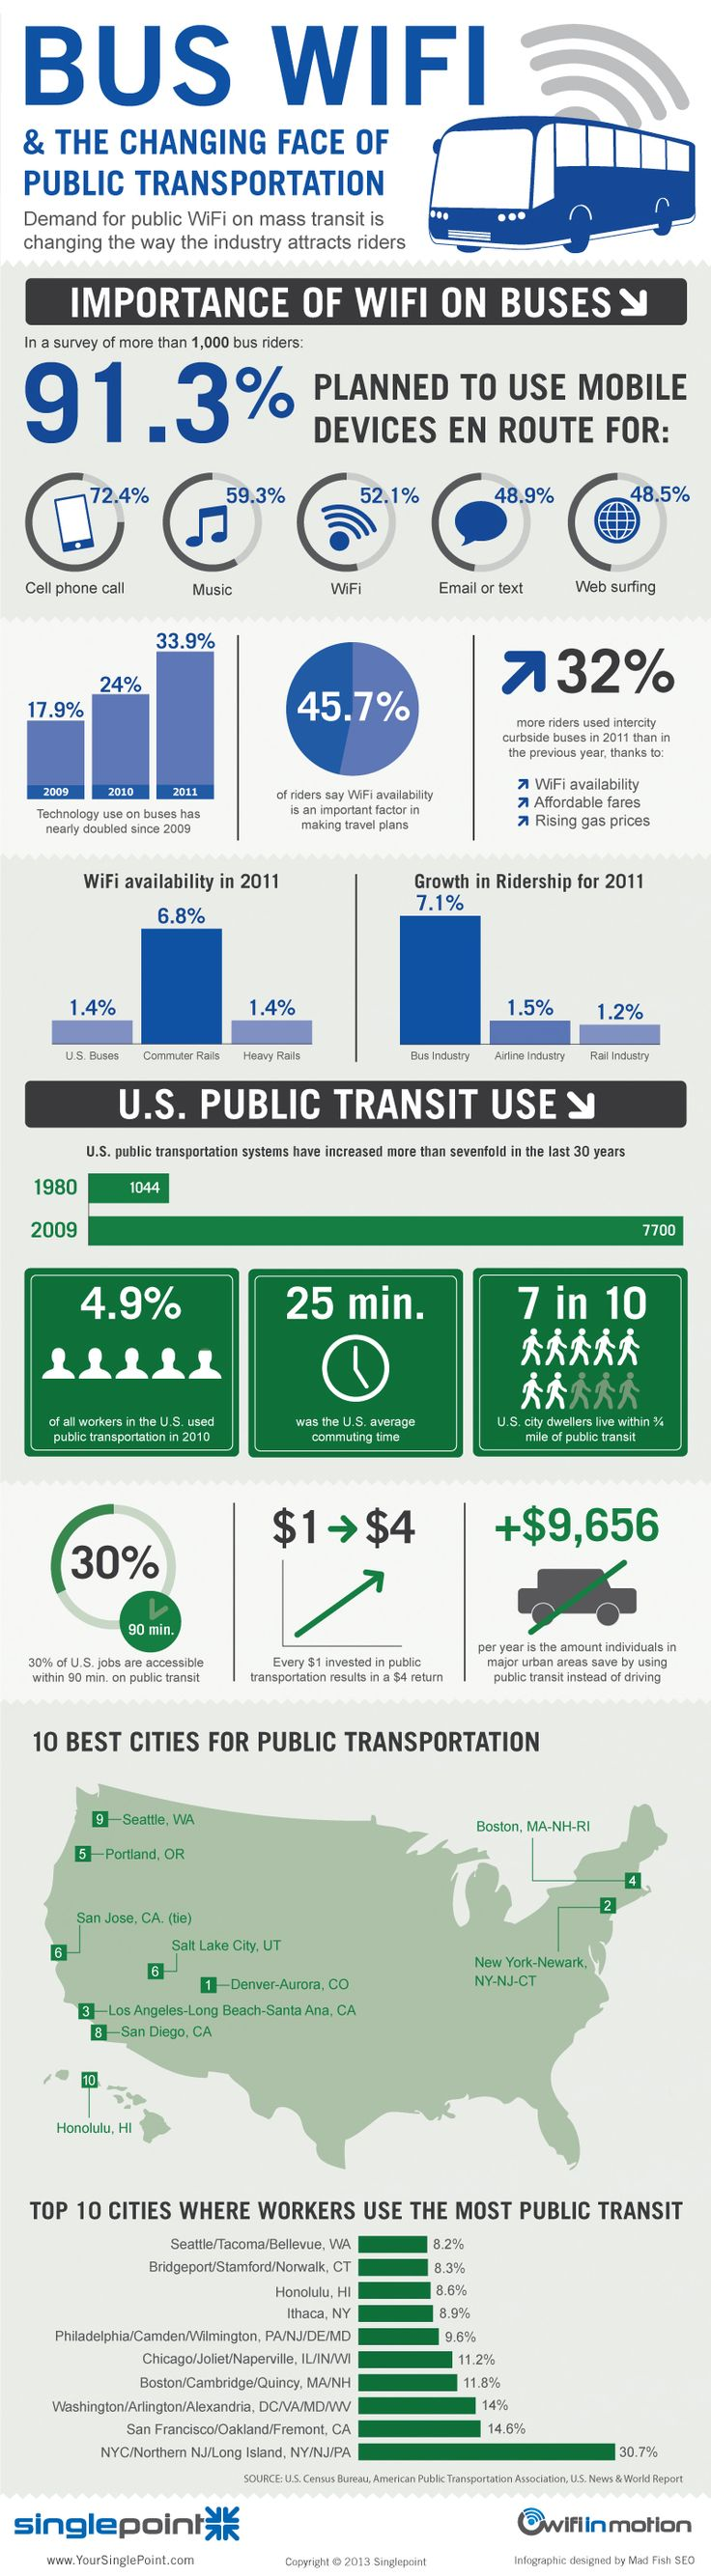 Bus WiFi and the Changing Face of Public Transportation - Internet WiFi for traveling is a must, say most U.S. mass transit riders. This infographic by SinglePoint outlines WiFi use on buses and how it impacts ridership.